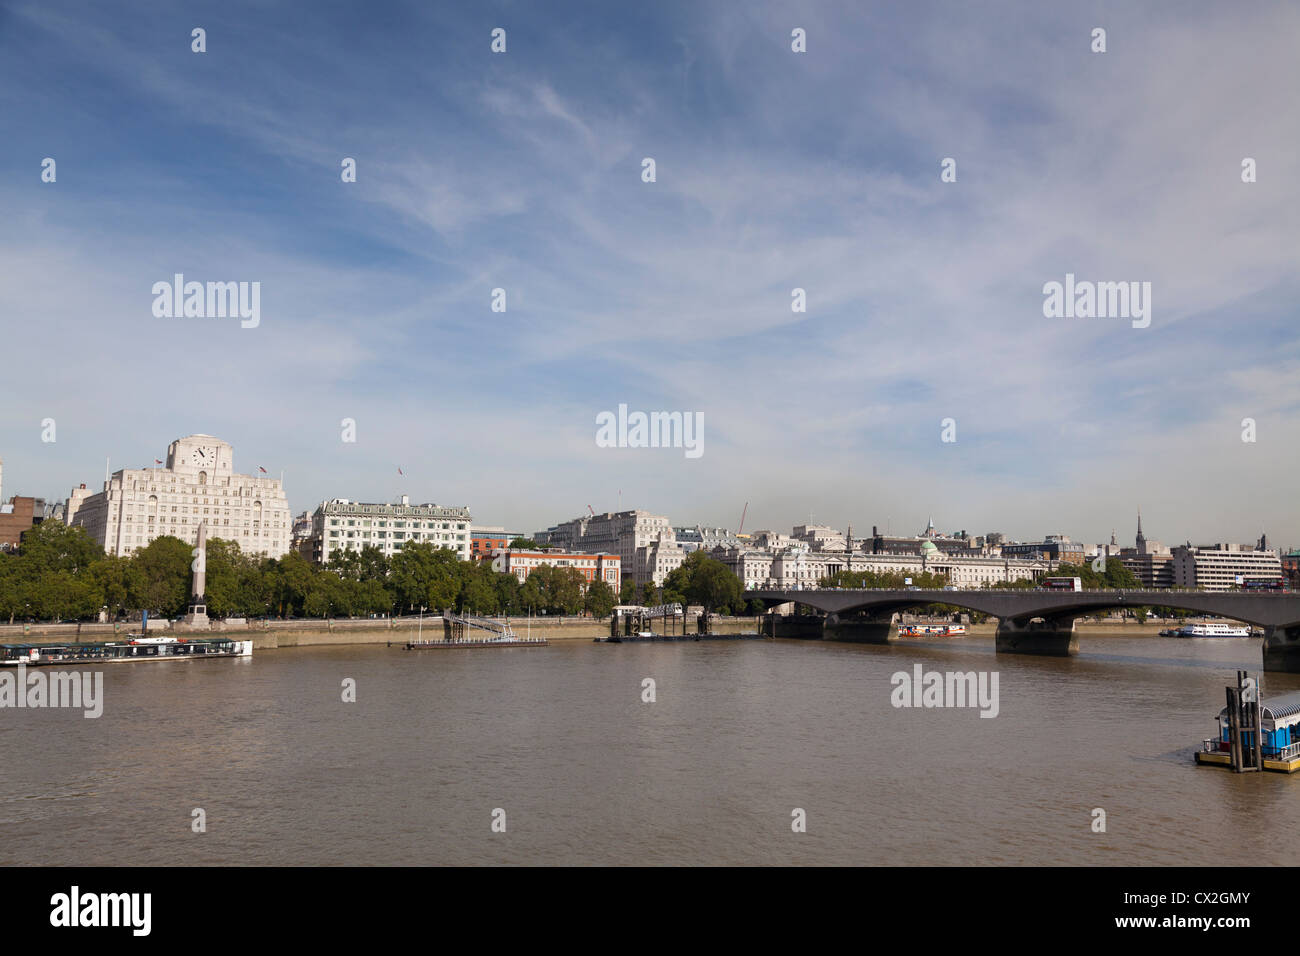 Shell Mex House and Waterloo Bridge panorama over the Thames Stock Photo